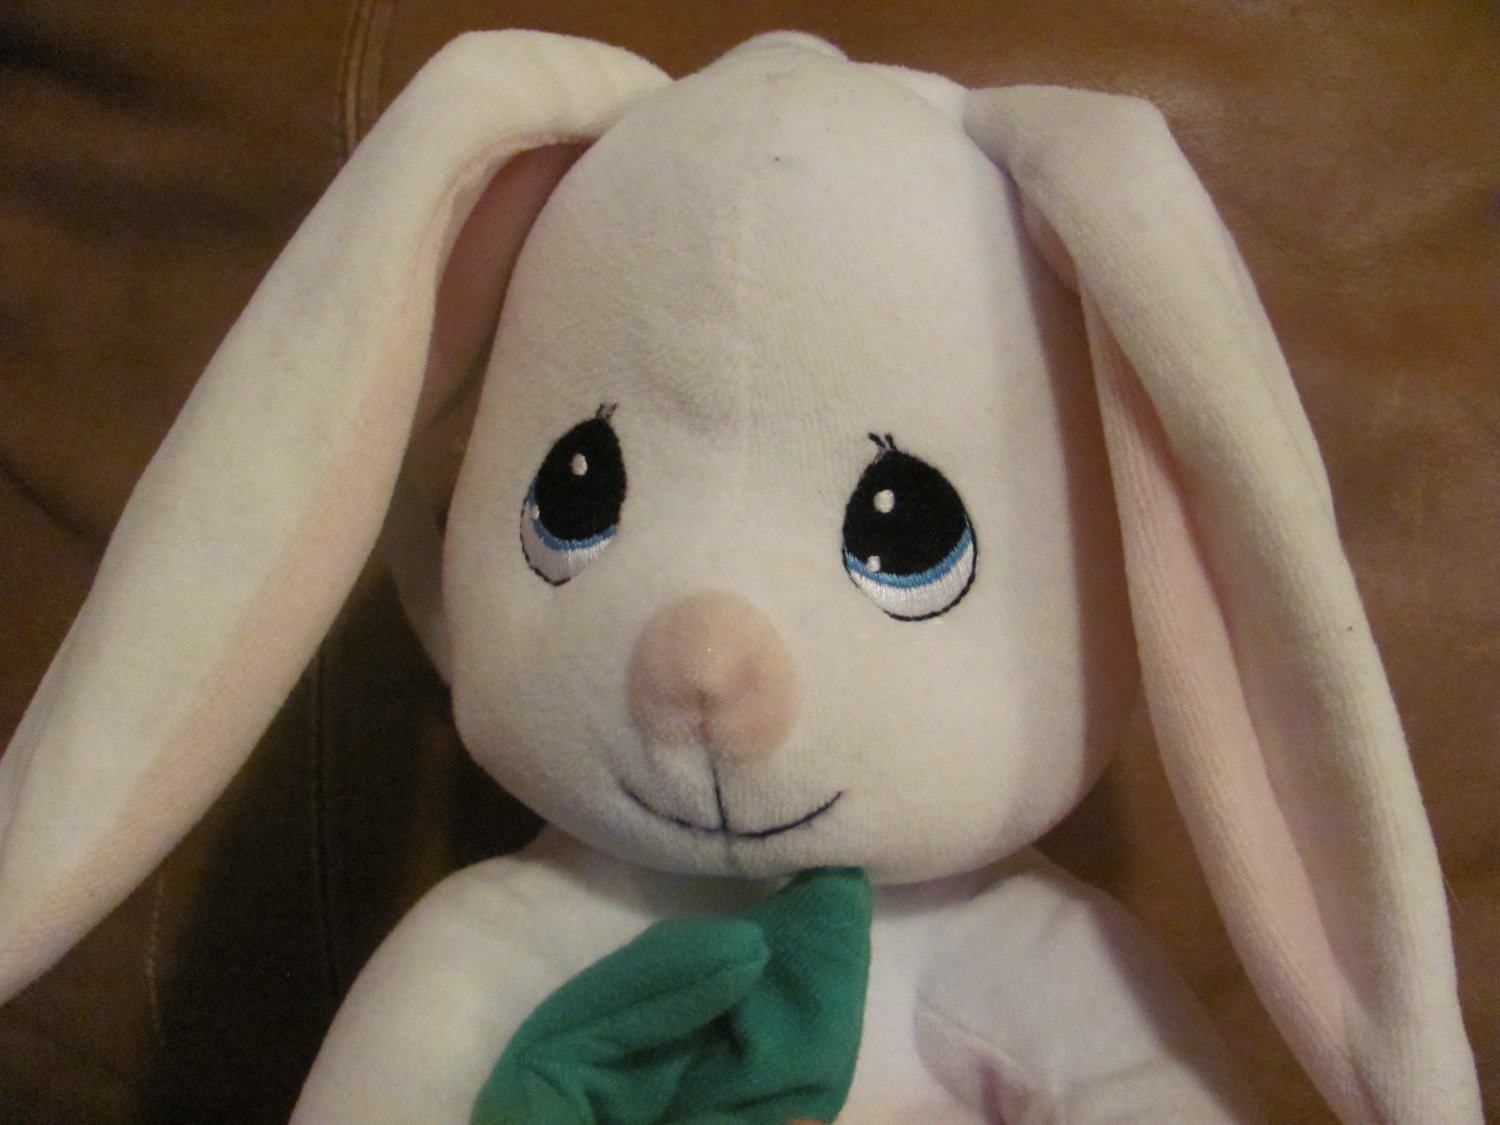 1999 Precious Moments White Bunny Rabbit Carrot Pull Musical Crib Toy Lovey Plush 11""